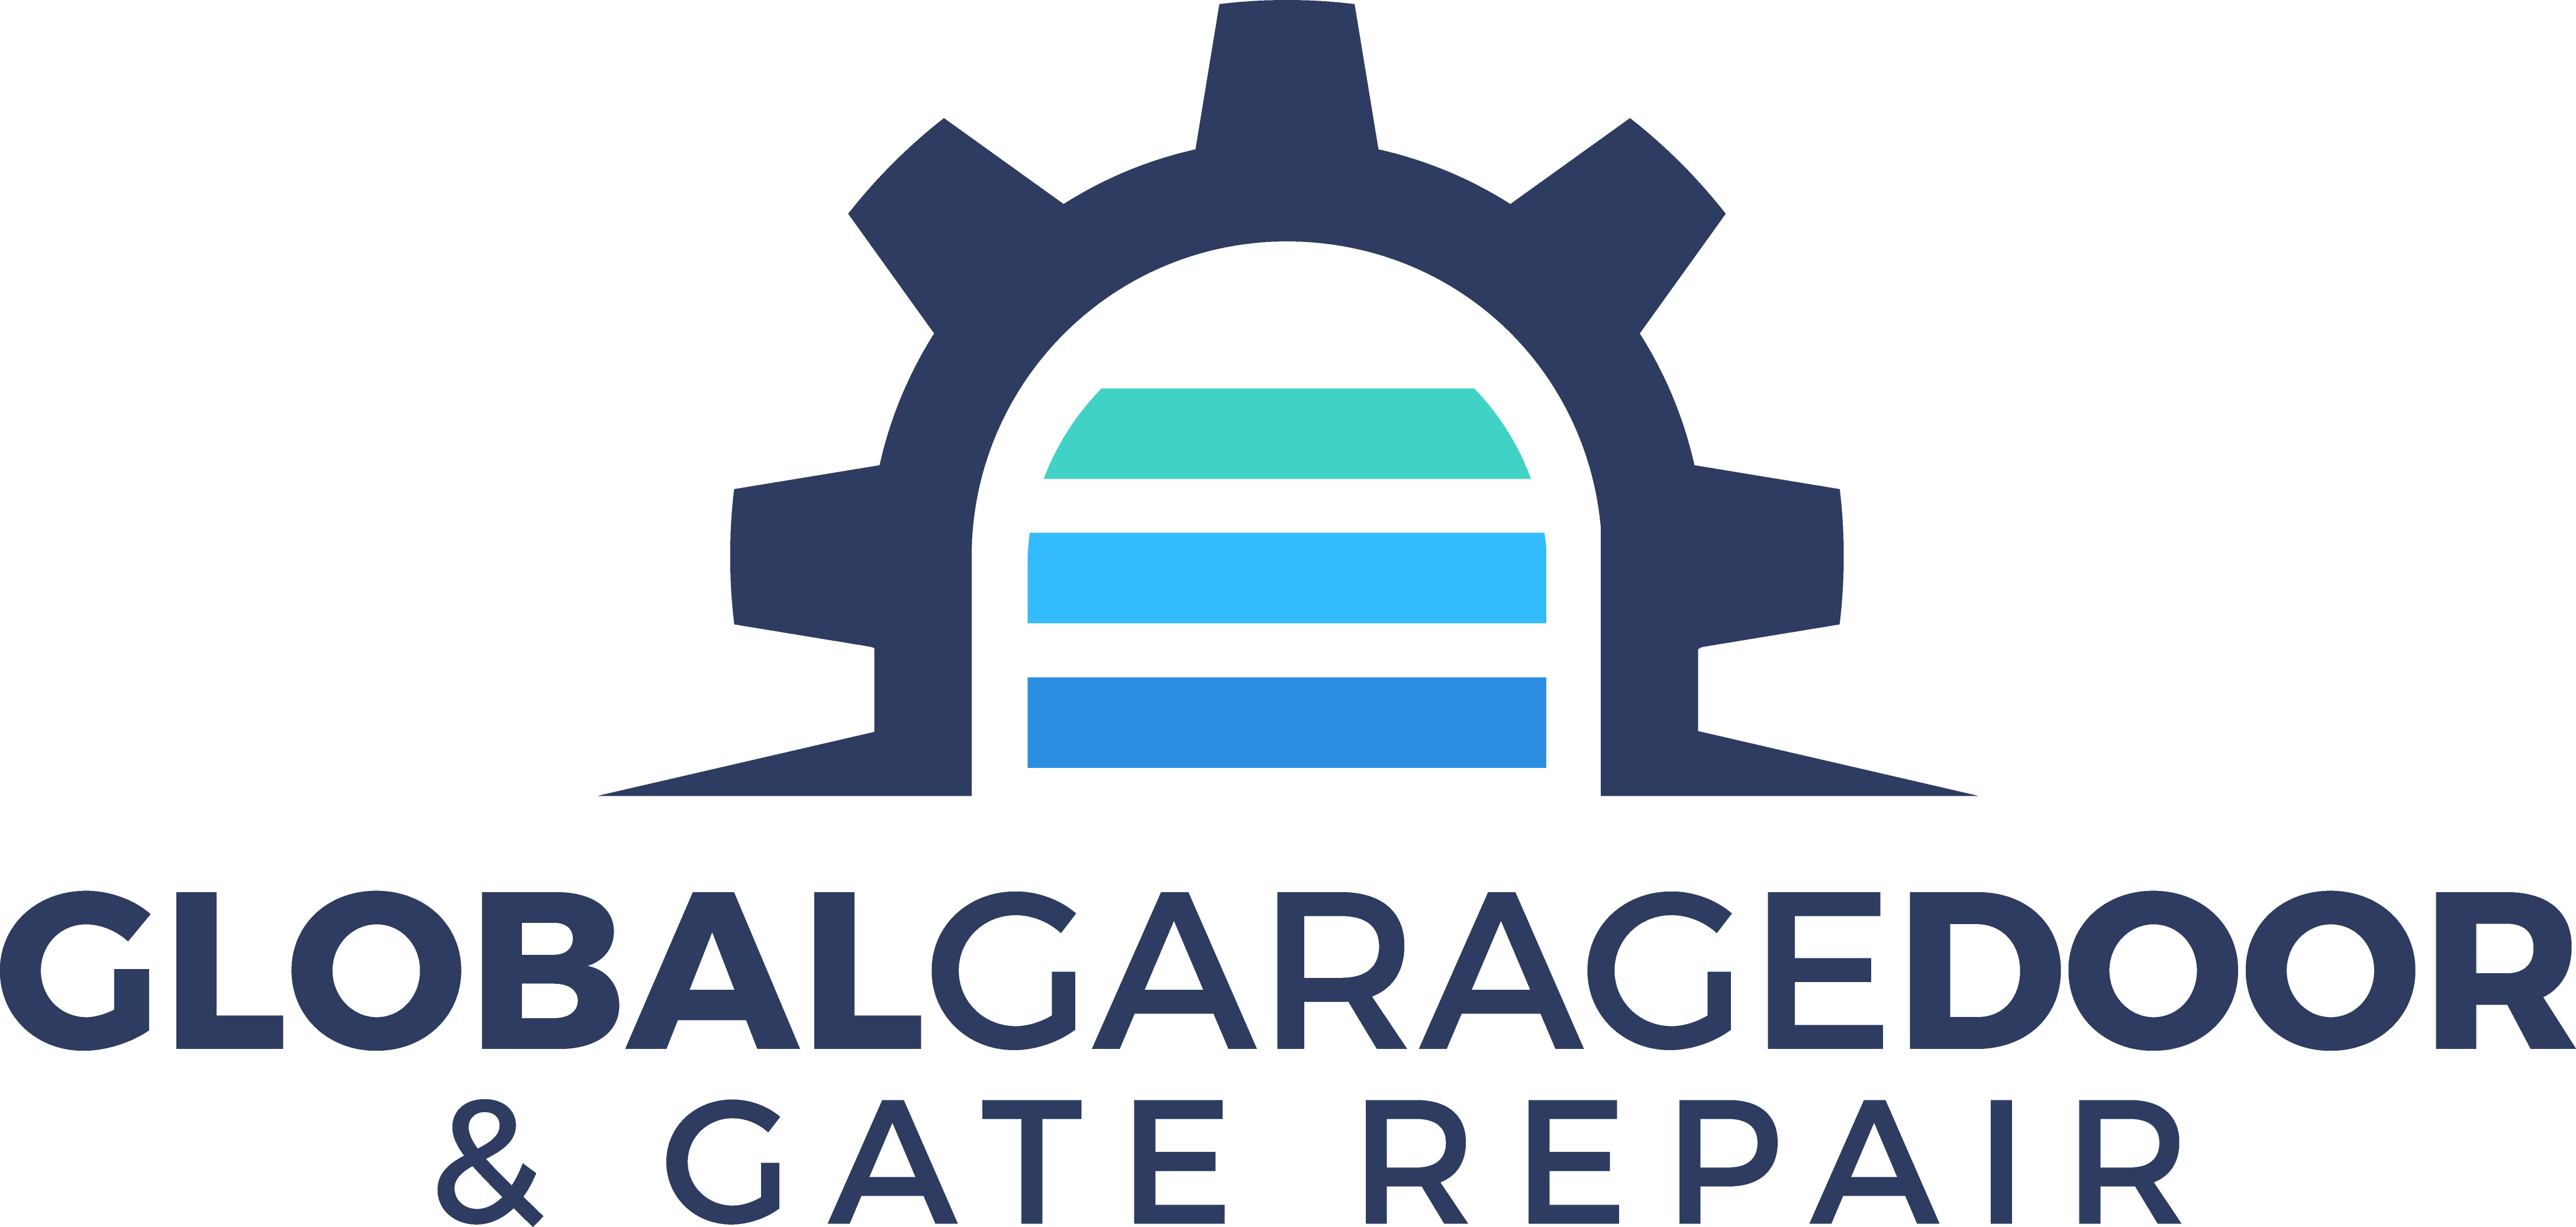 Global Garage Door Gate Repair Is A Leading Garage Door Repair